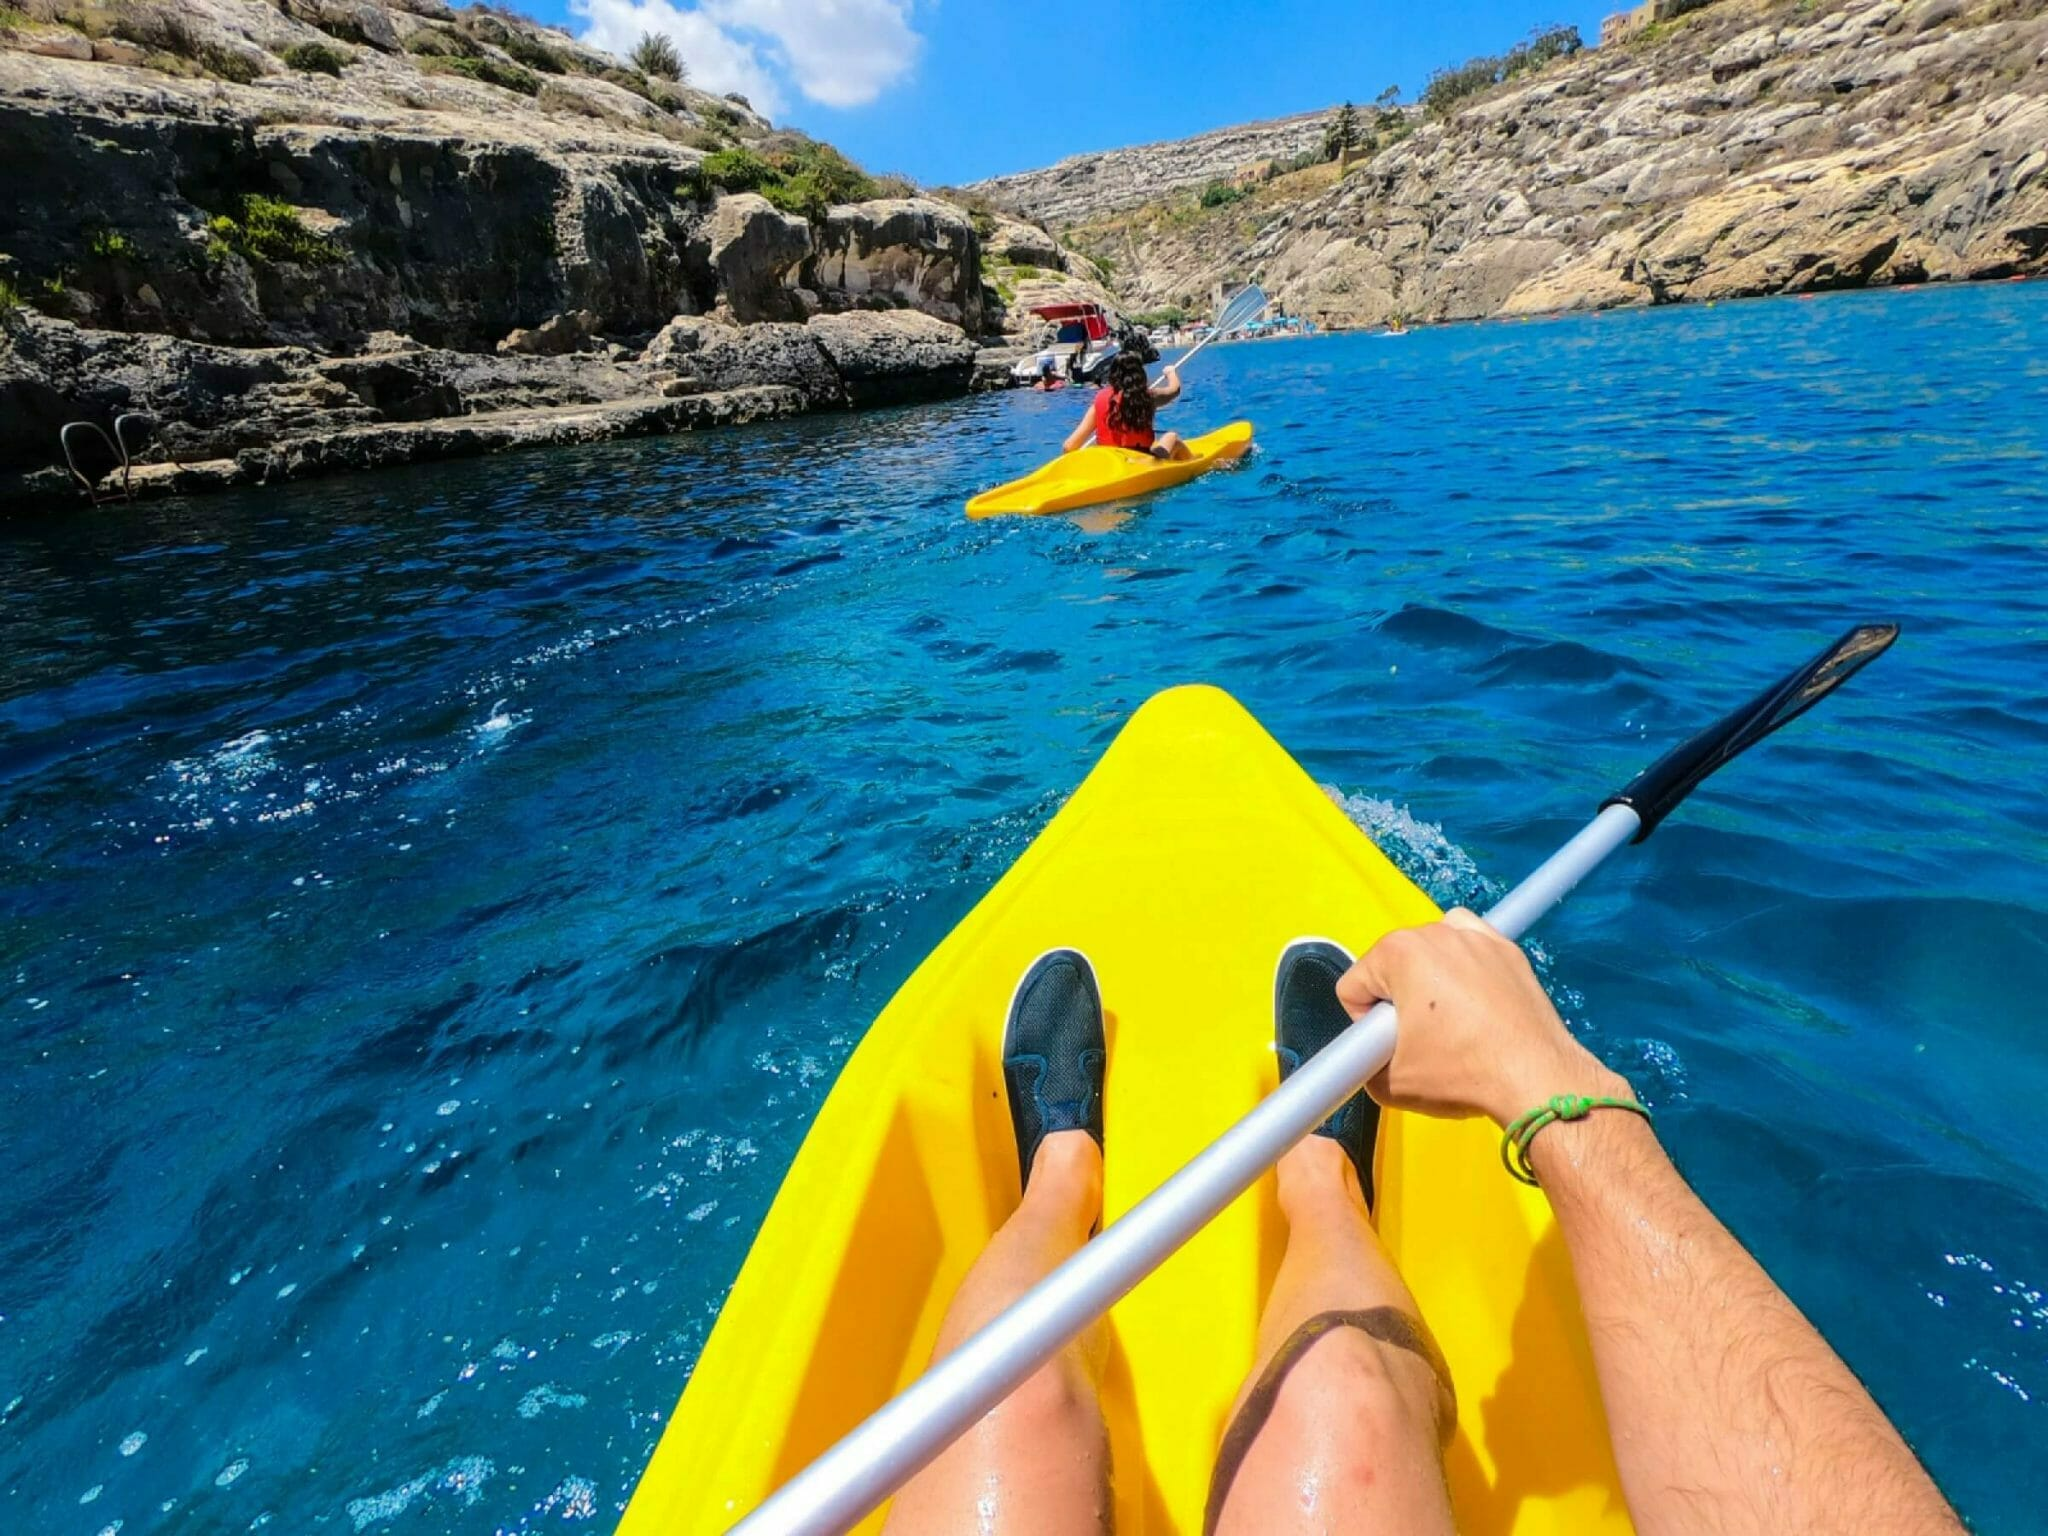 Two kayakers in bright yellow kayaks with fast moving in canyon on a sunny day